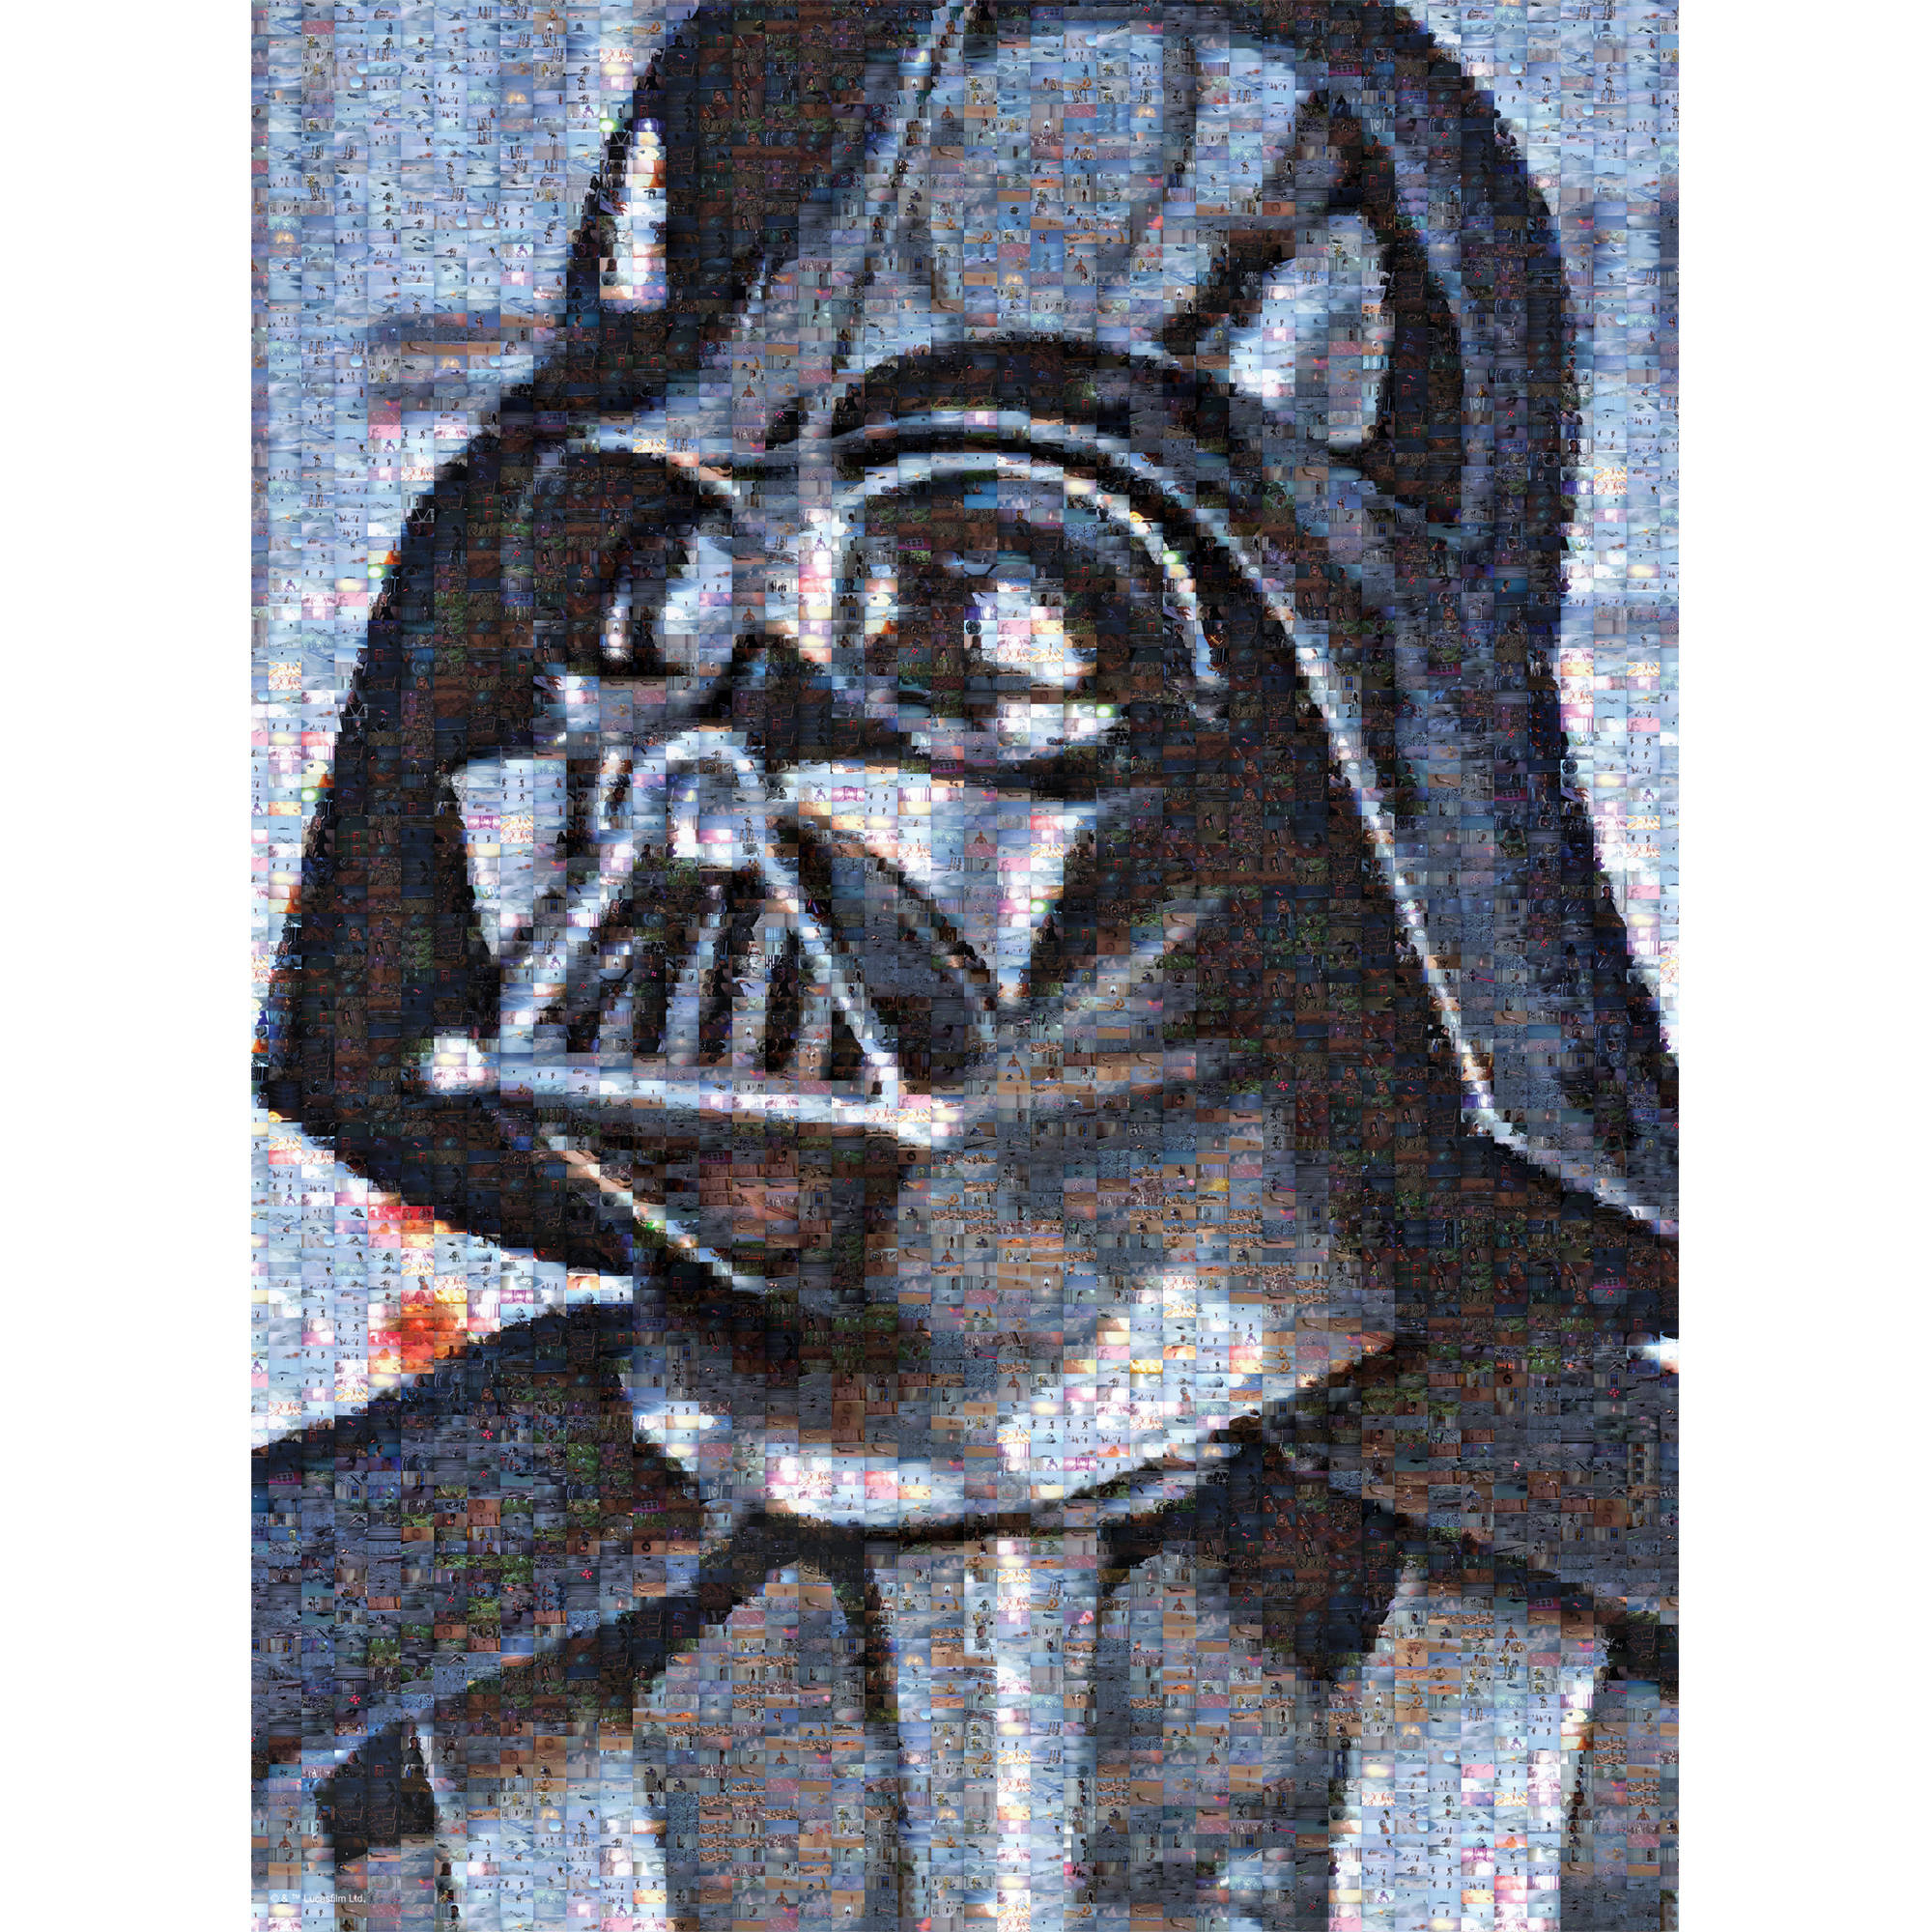 Buffalo Games Star Wars Darth Vader Jigsaw Puzzle, 1,000 Pieces